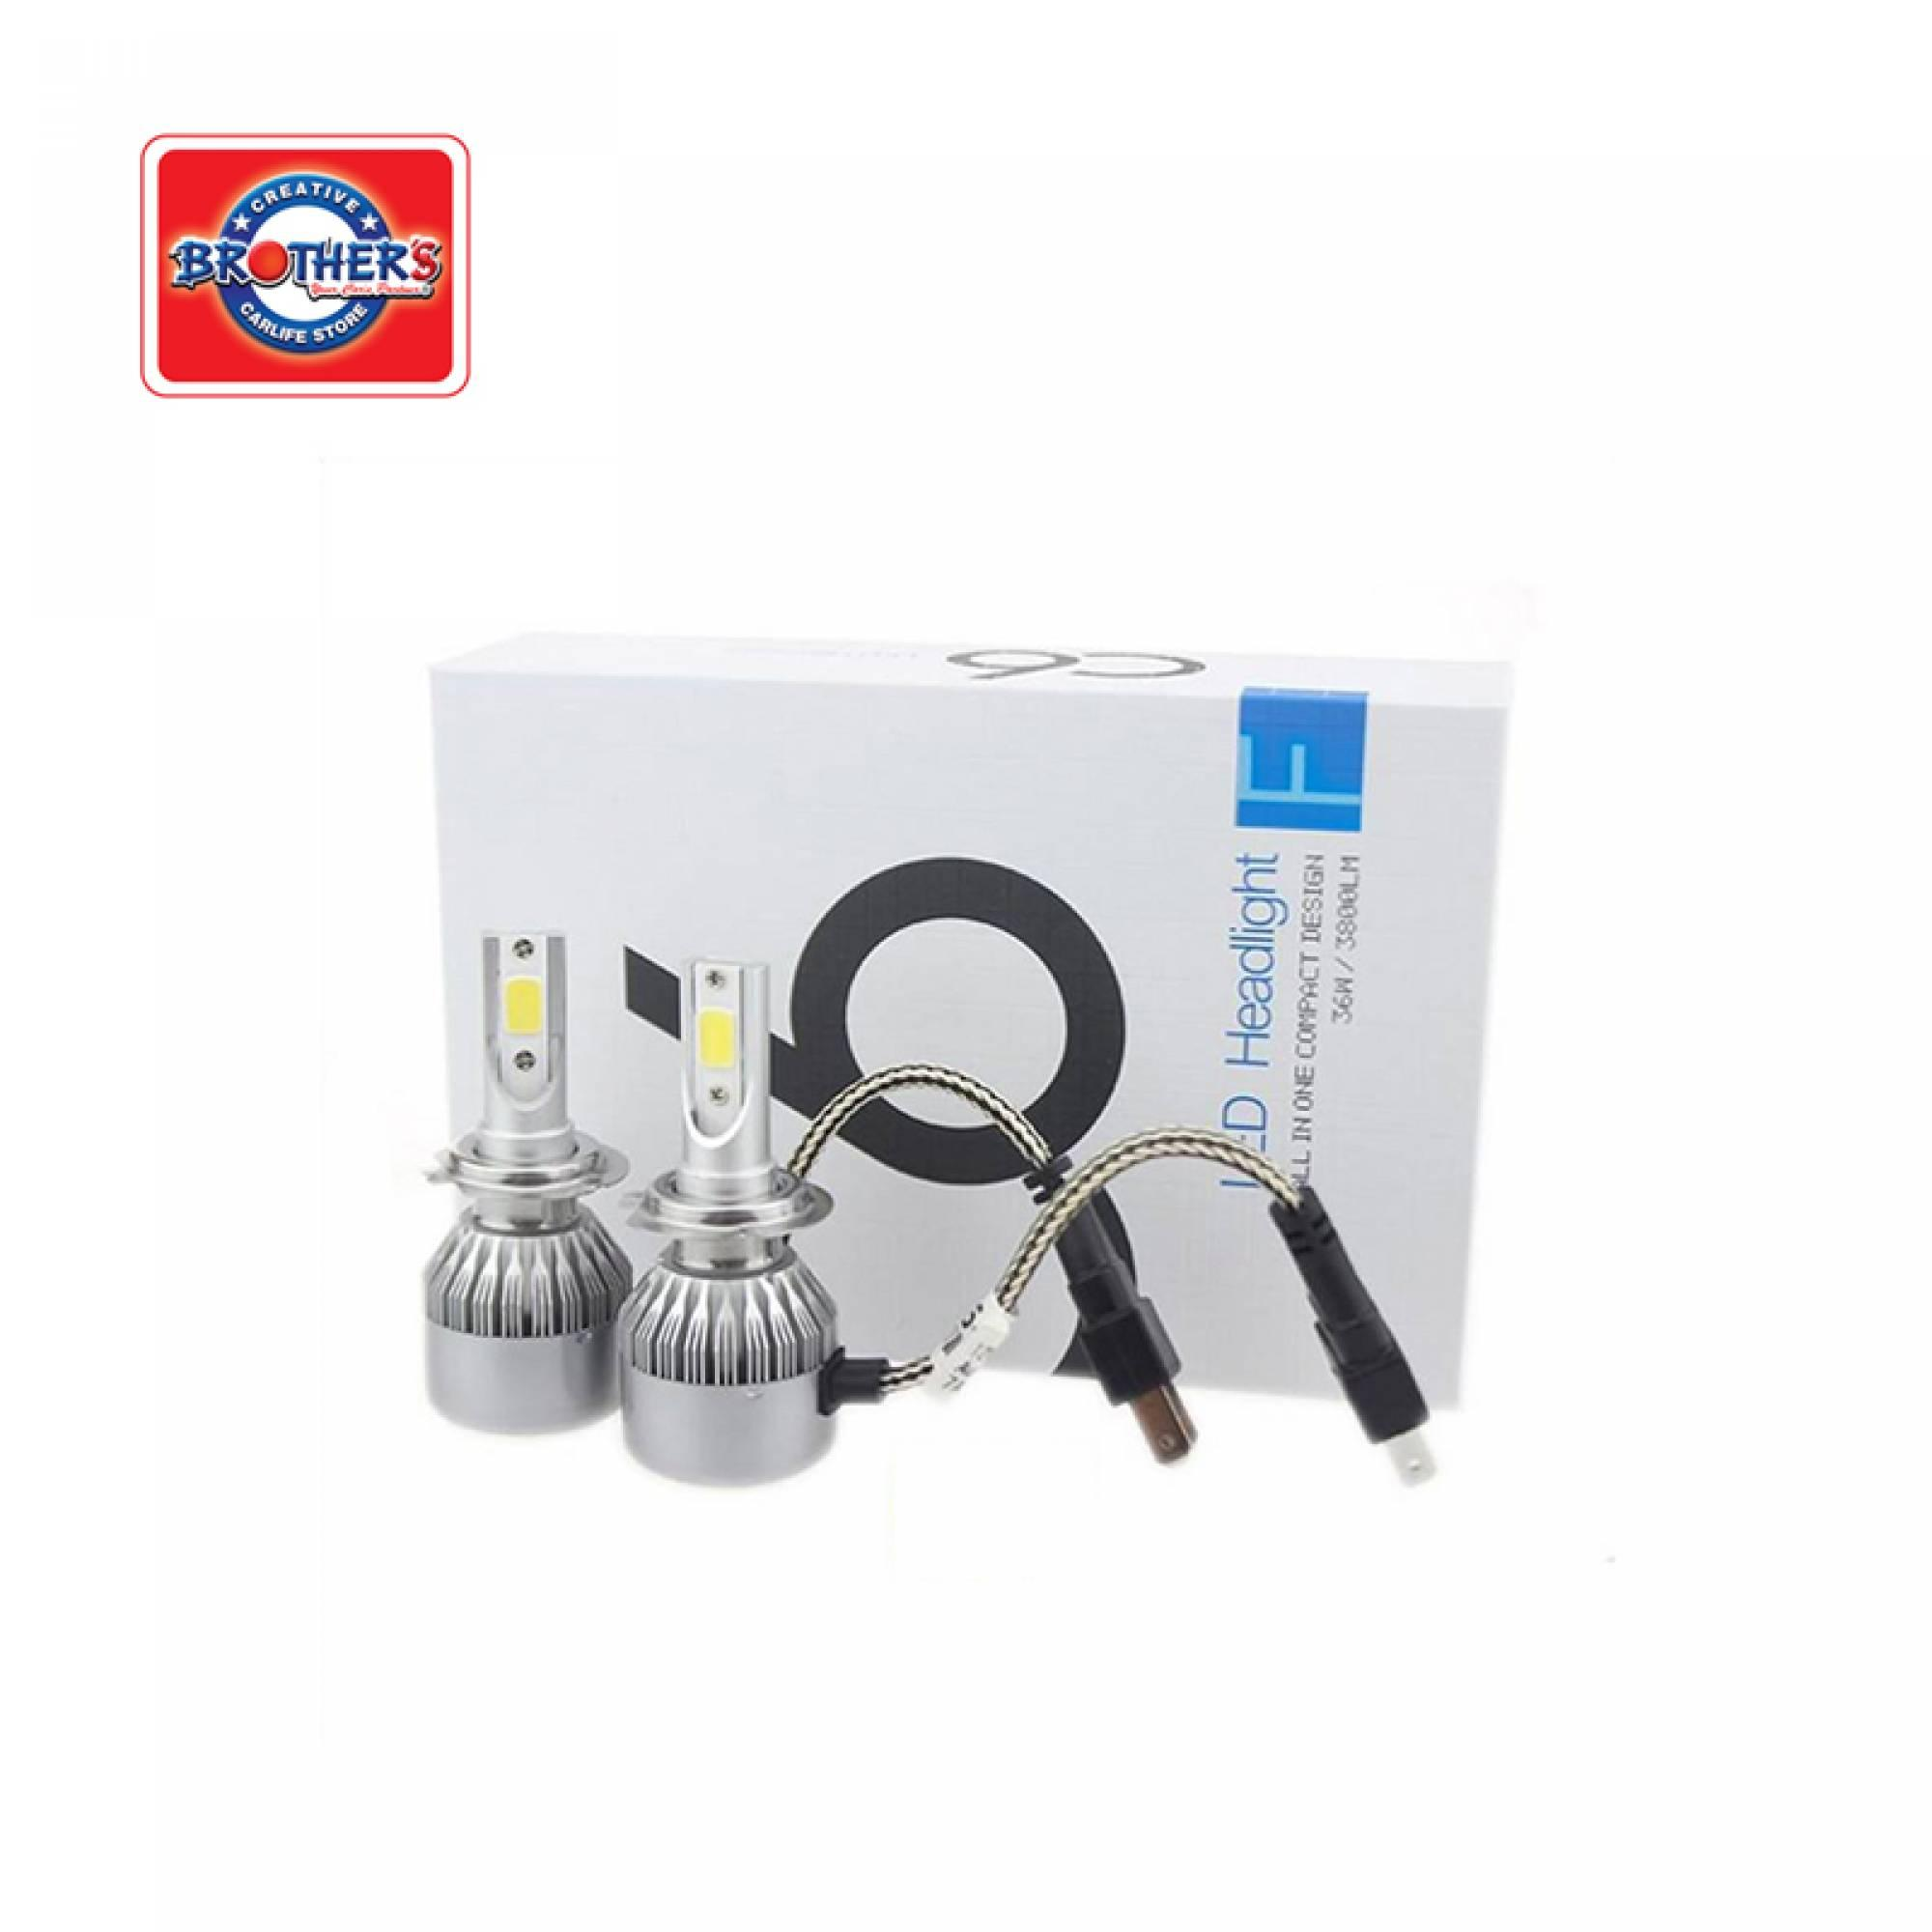 Led Online Shop C6 H7 Led Bulb Brother S Factory Outlet M Sdn Bhd Online